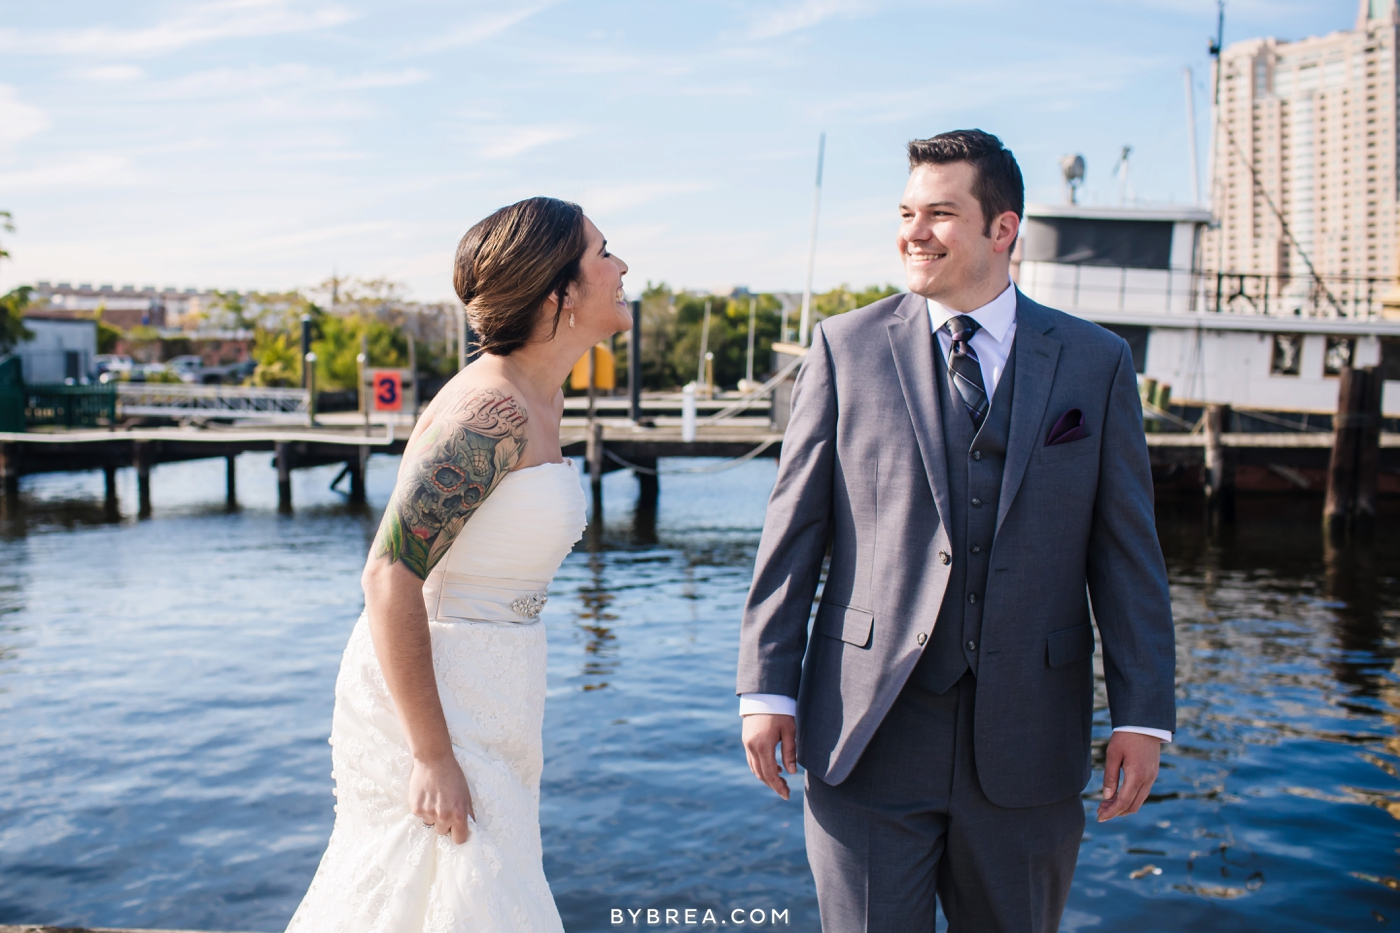 Baltimore wedding photo first look on a pier